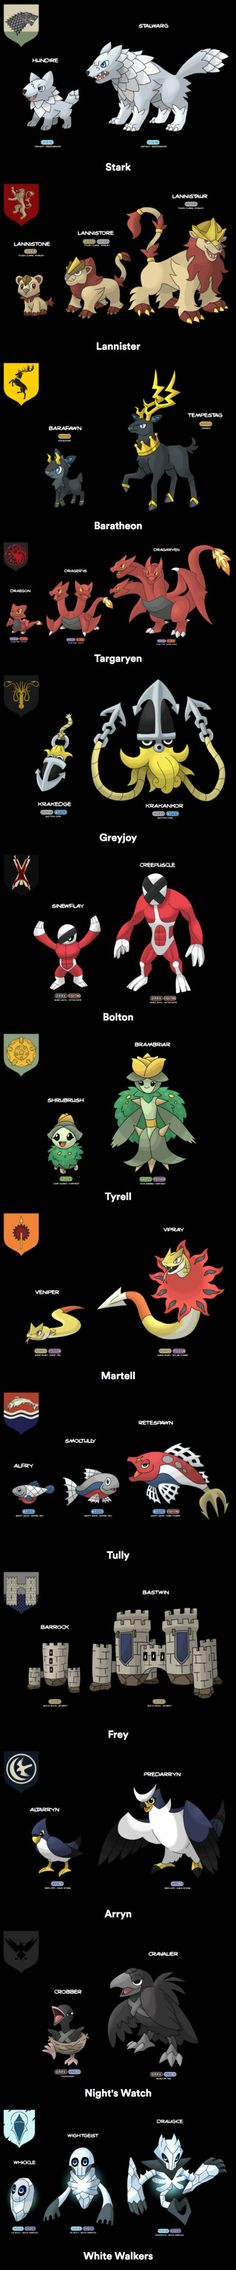 Game of thrones Pokémon crossover